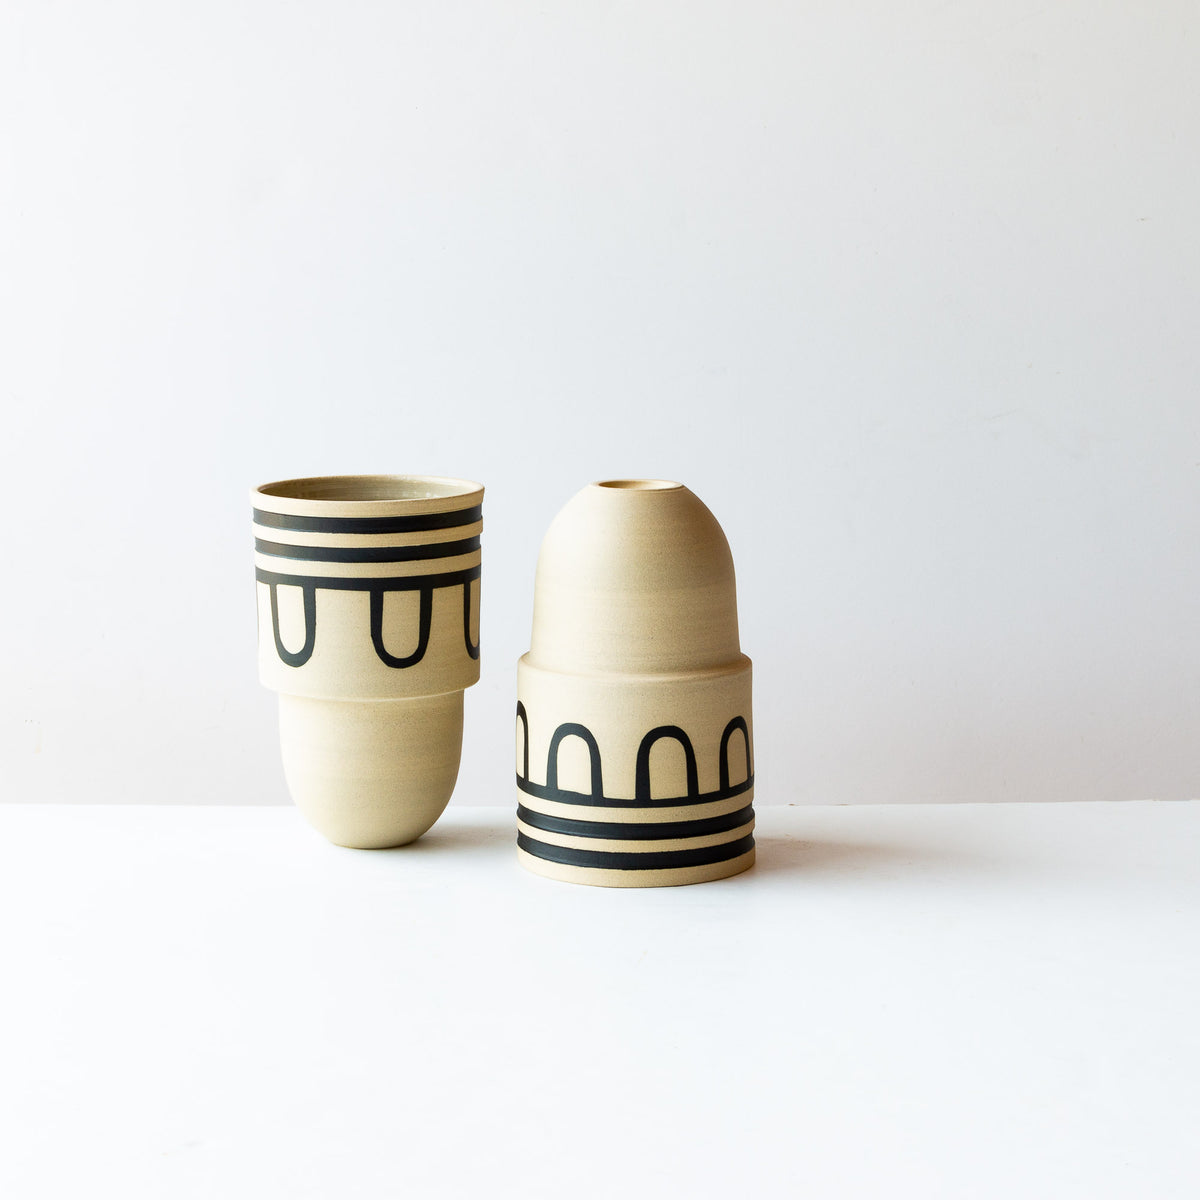 Auguste #4 - Two Handmade & Hand Painted Decorative Stoneware Pots - Sold by Chic & Basta